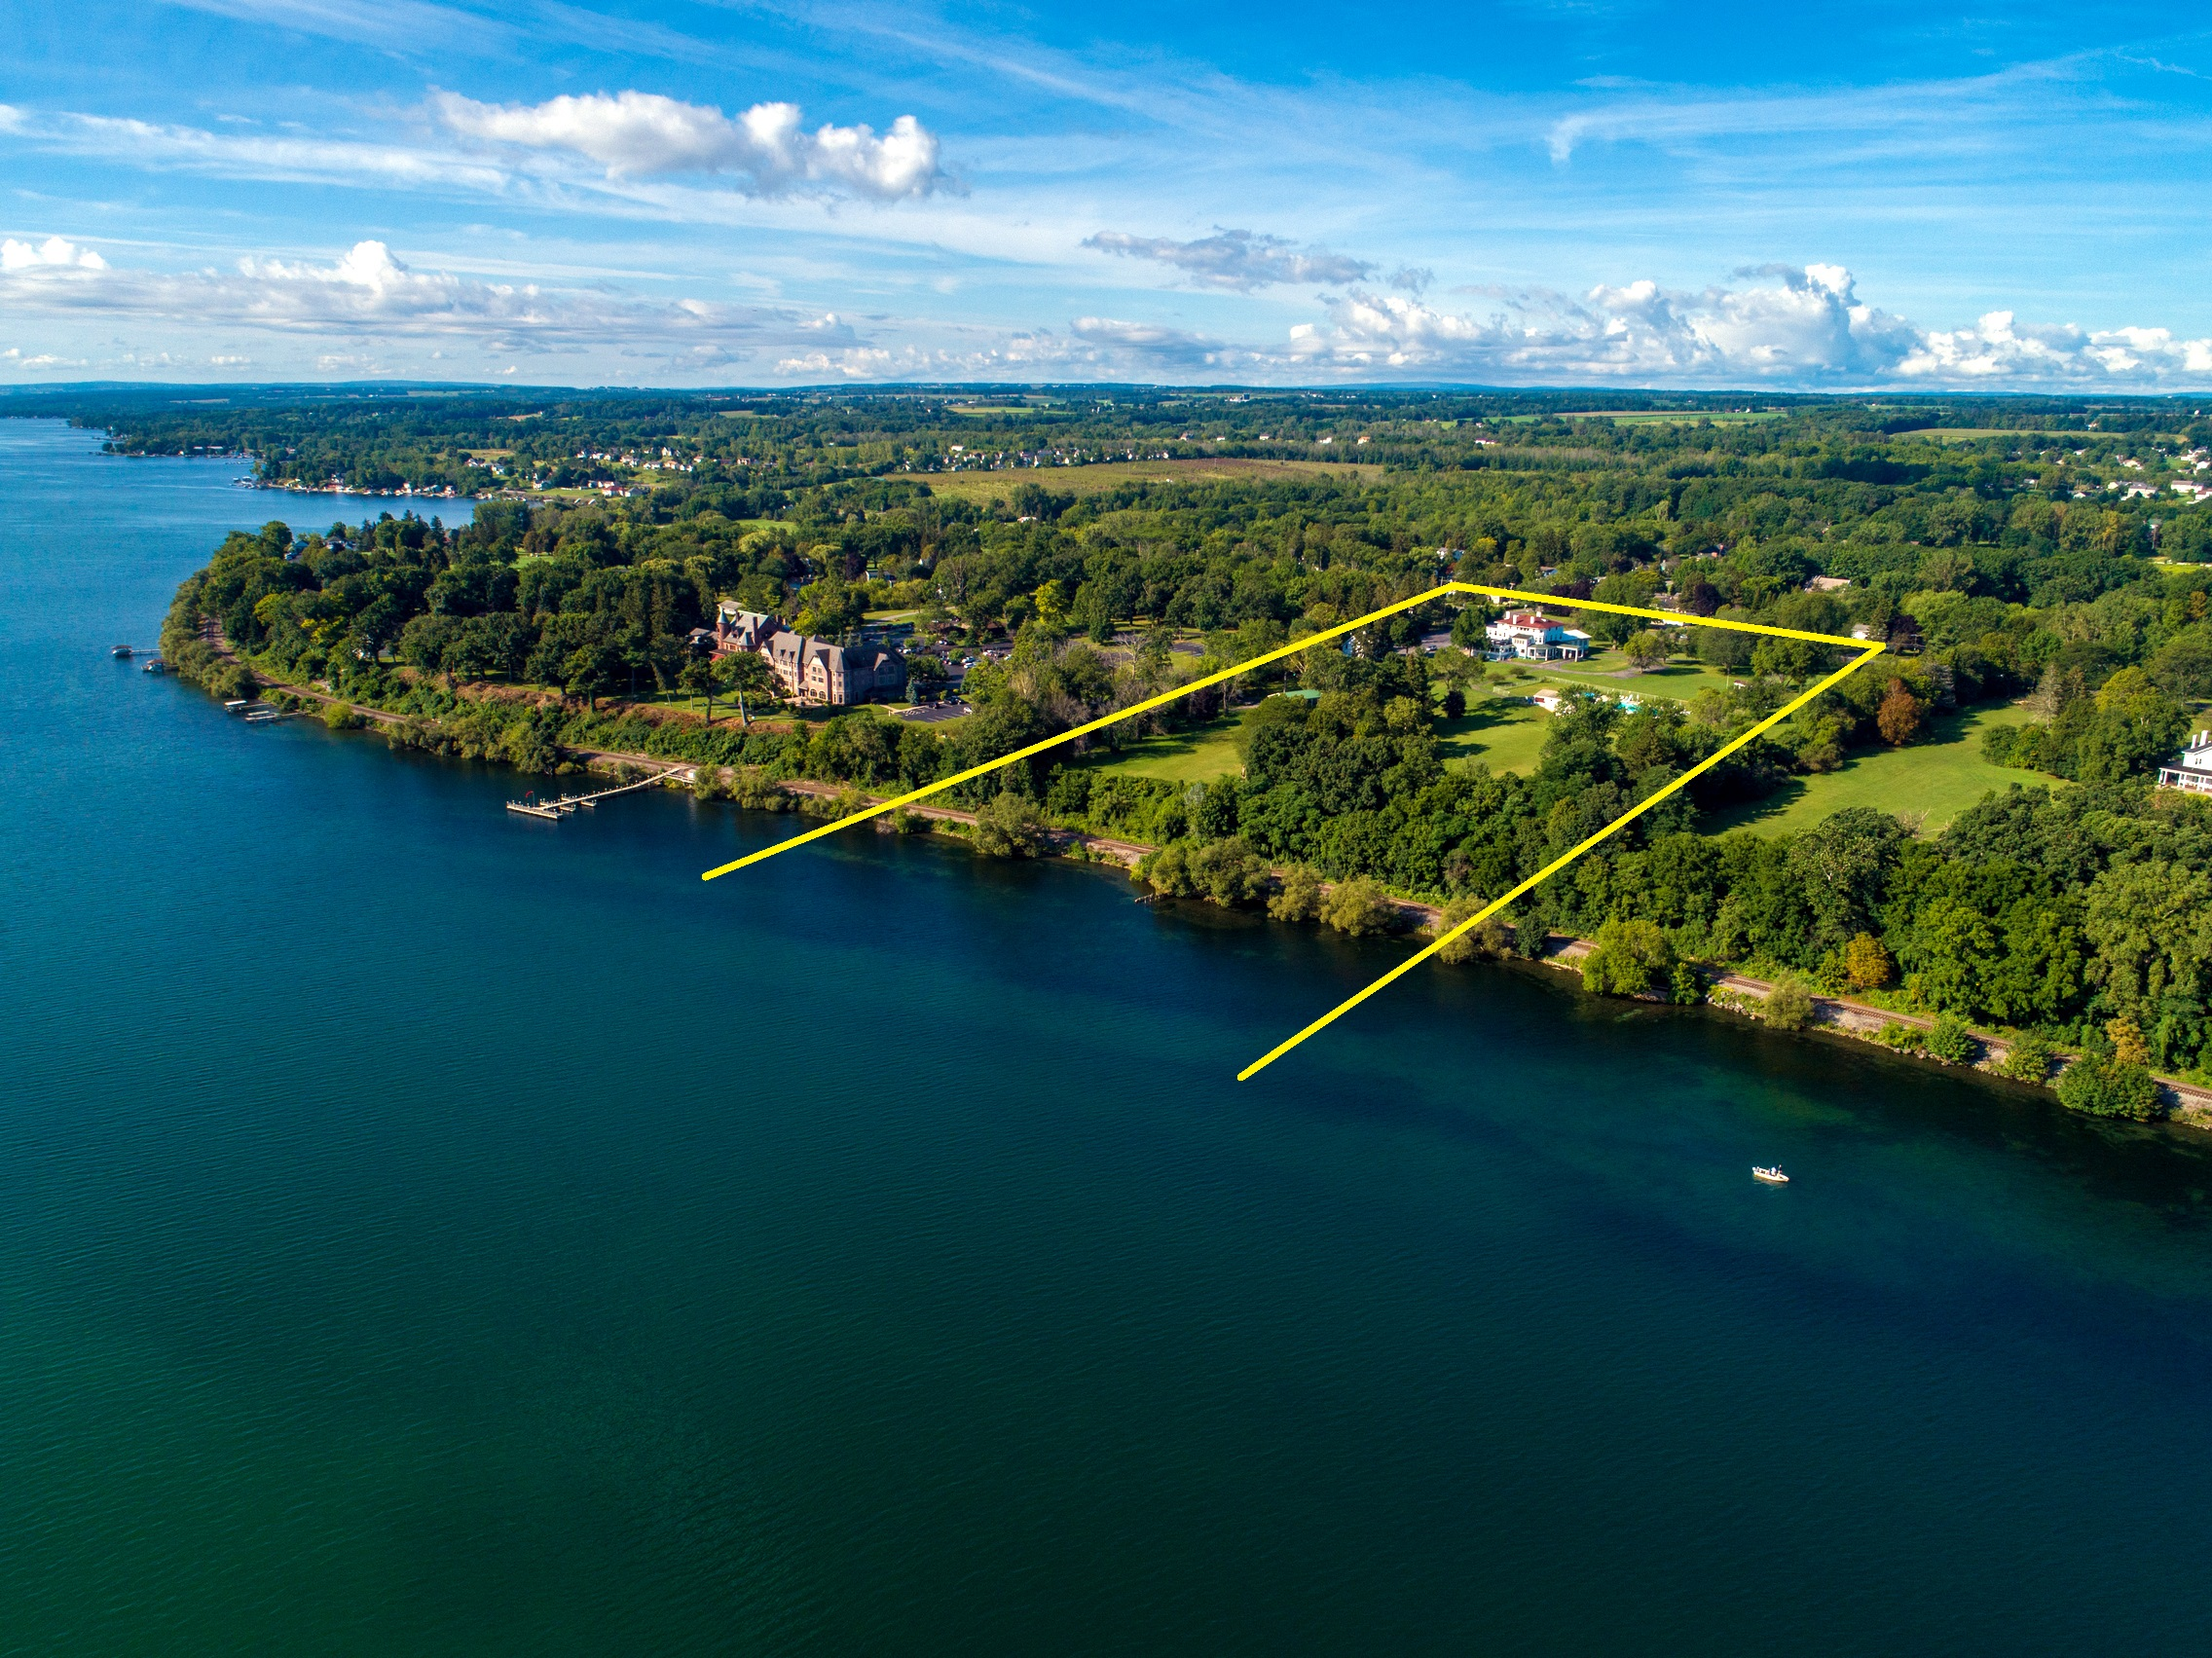 Located in  New York's  beautiful fresh water  Finger Lakes Wine Country Region  on the western shores of  Seneca Lake.  The property is situated on State Route 14 next to BelHurst Castle and Winery. Geneva on the Lake Resort and Hobart William Smith College are also on the same route.